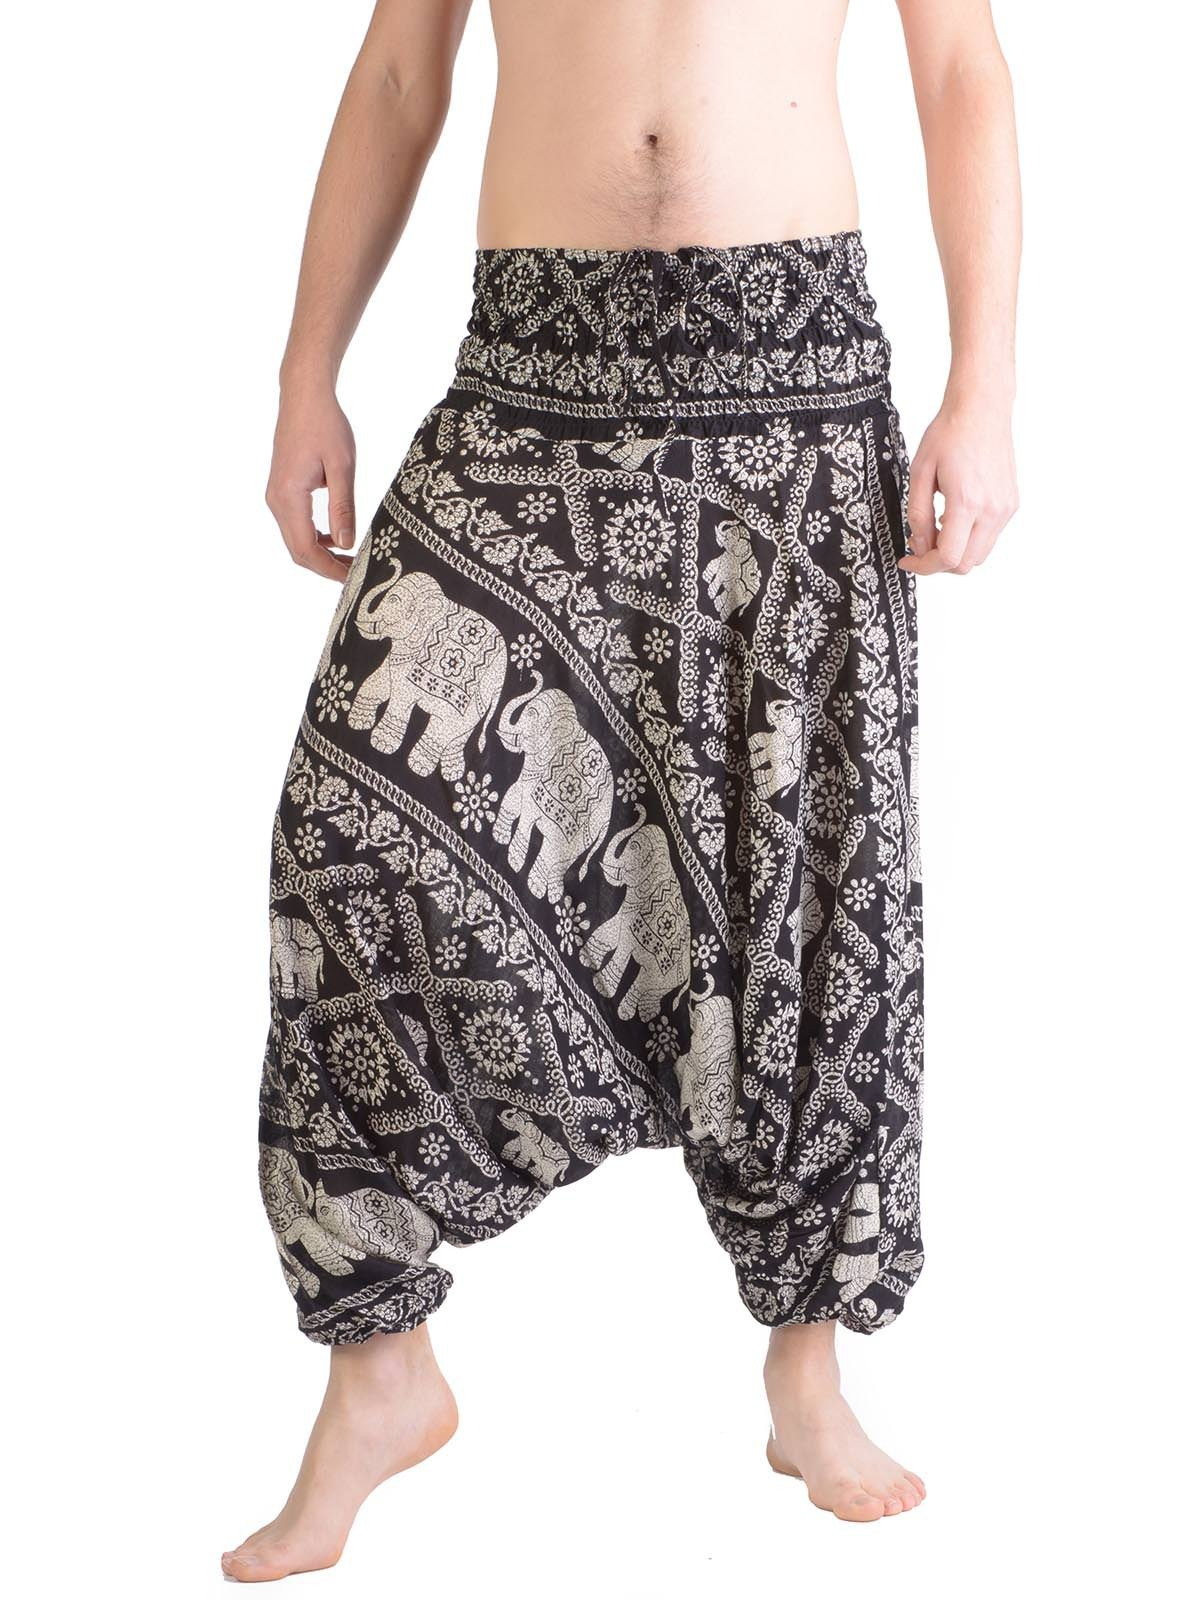 mens harem pants elephant harem pants for men - forgotten tribes FBMZYPJ